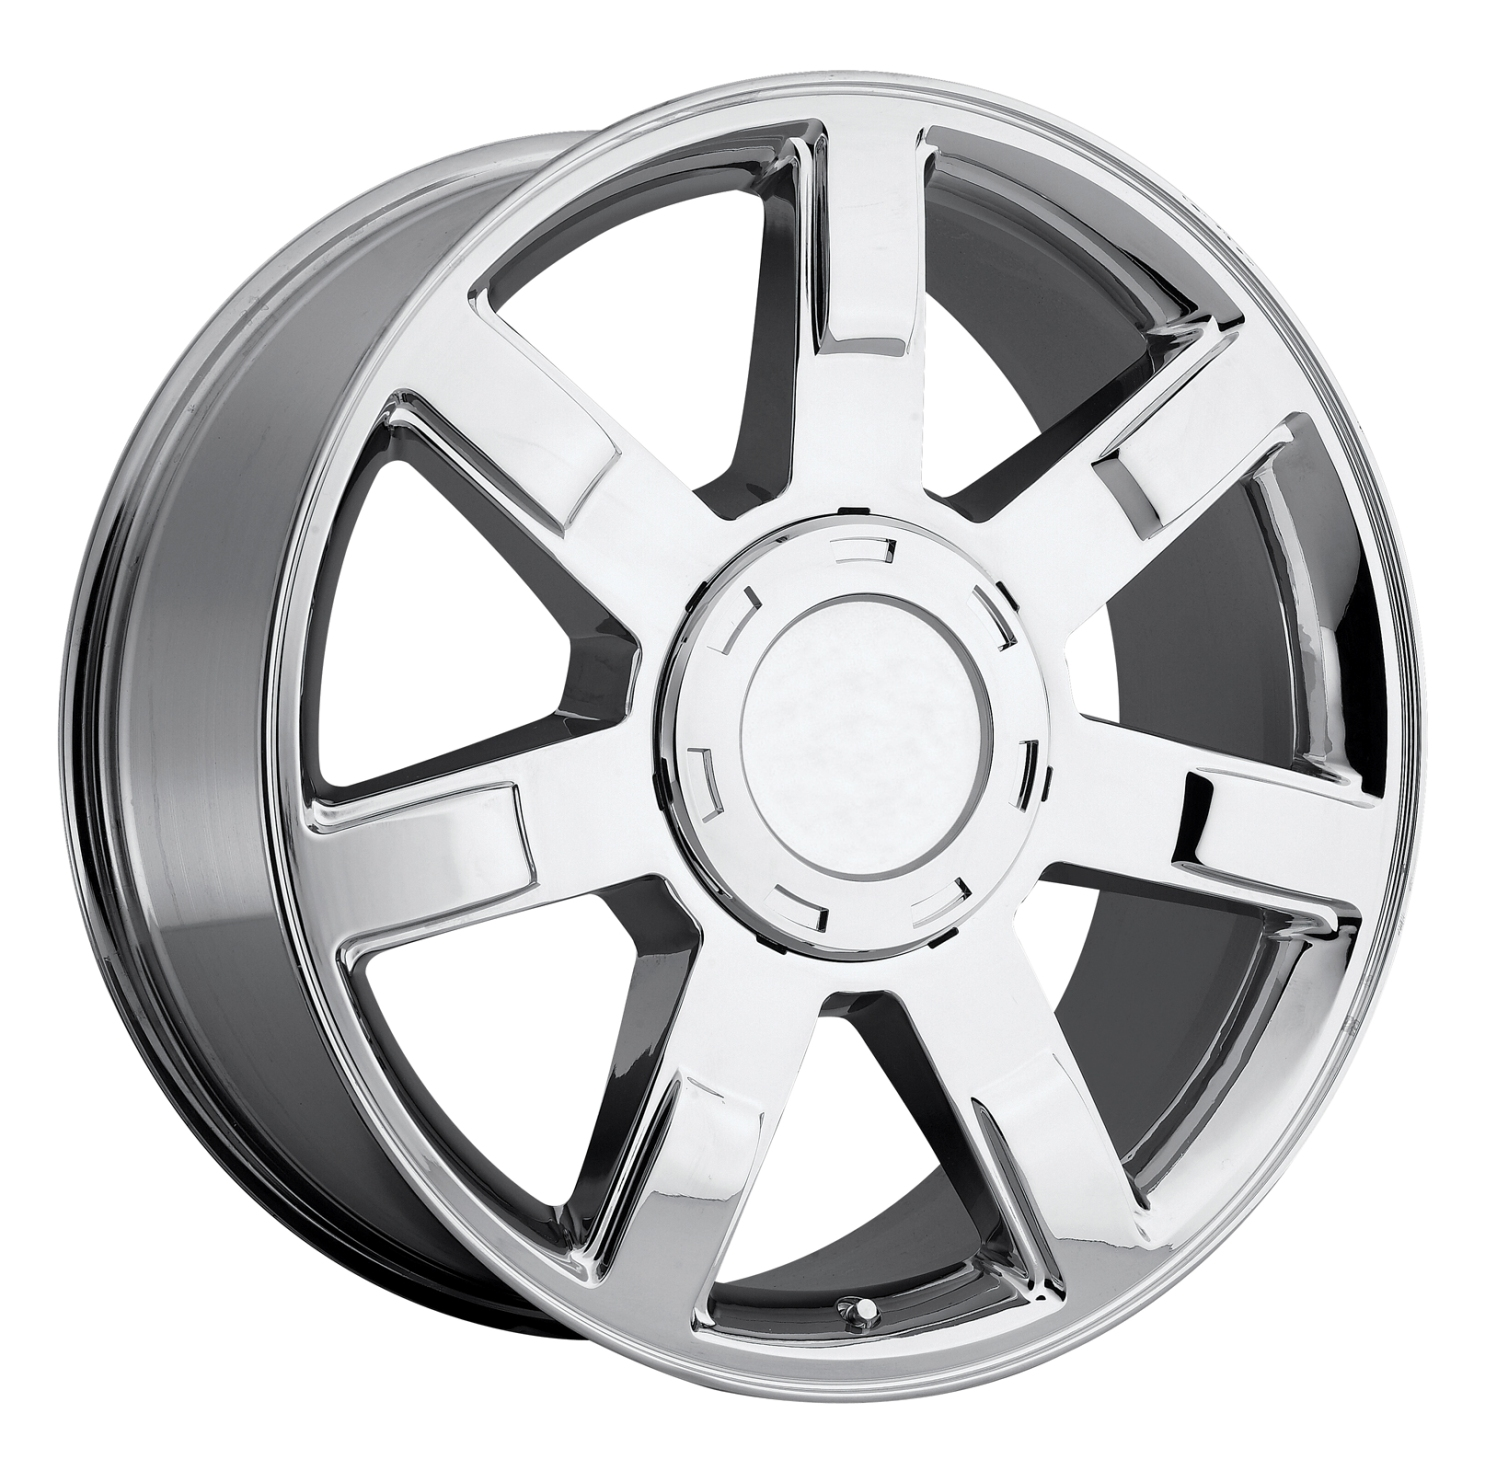 Cadillac Escalade 2007-2012 20x9 6x5.5 +31 - Wheel - Chrome With Cap